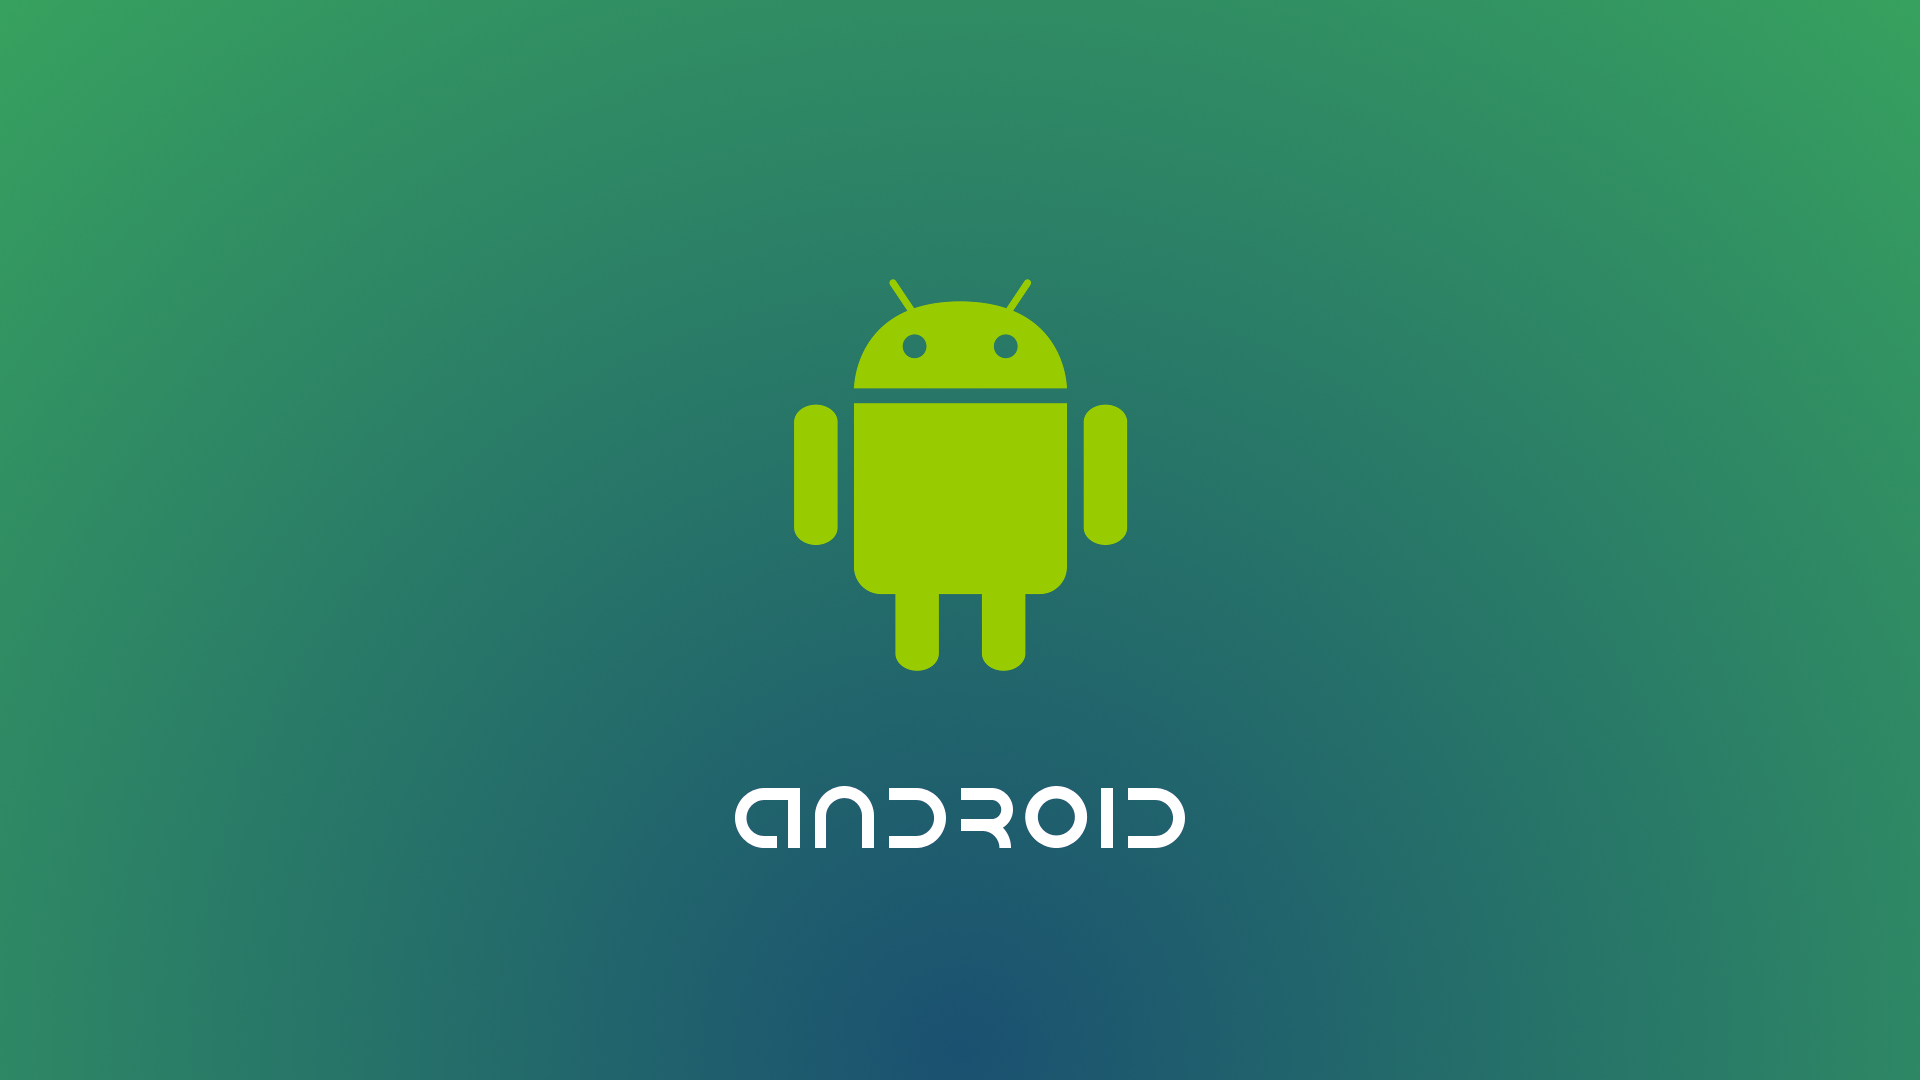 android wallpaper by scoobsti android wallpaper by scoobsti